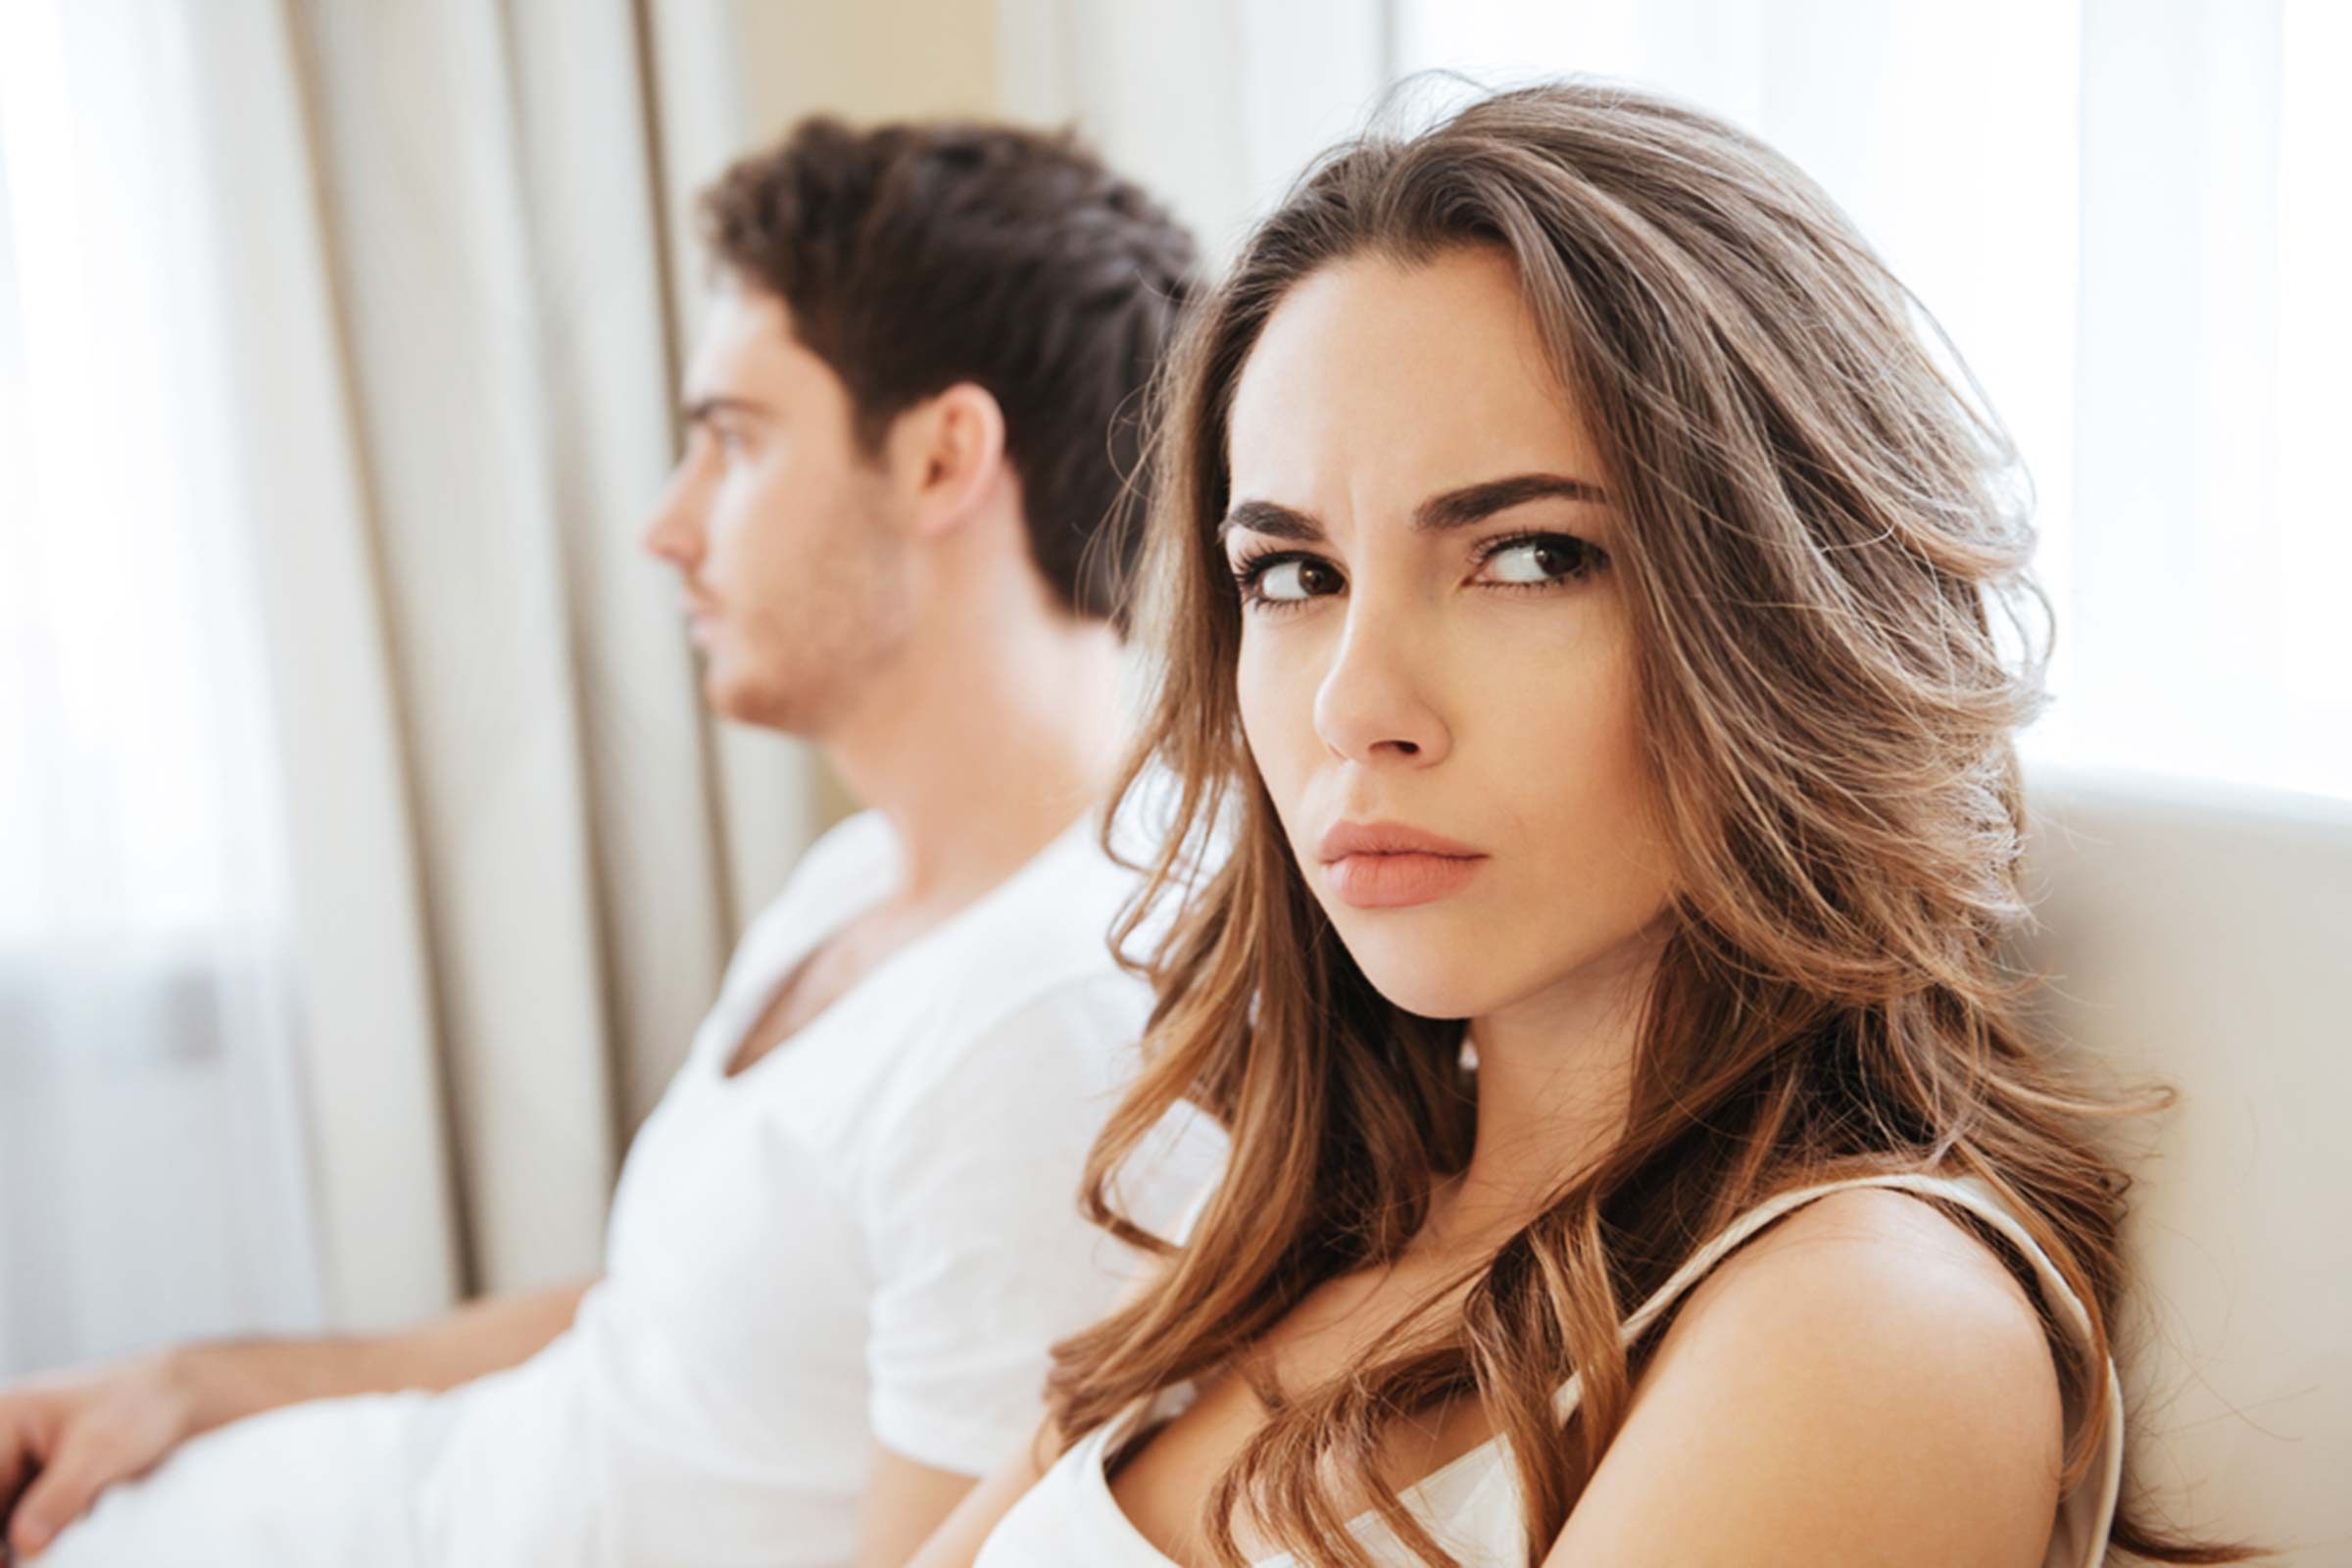 why does wife avoid intimacy